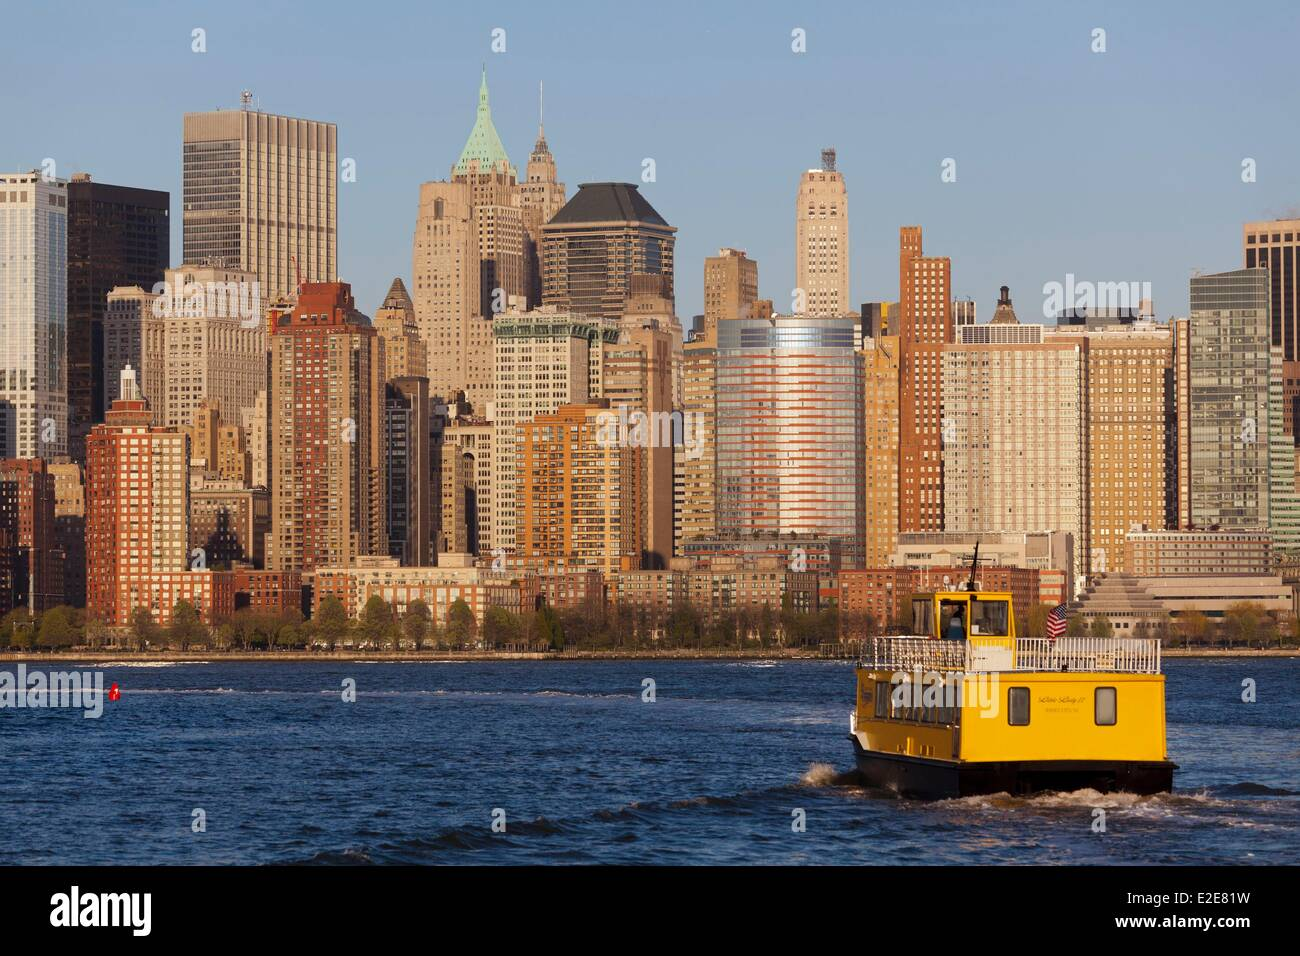 United States, New York, Manhattan, a taxi boat on the Hudson River going from Jersey City to Manhattan - Stock Image